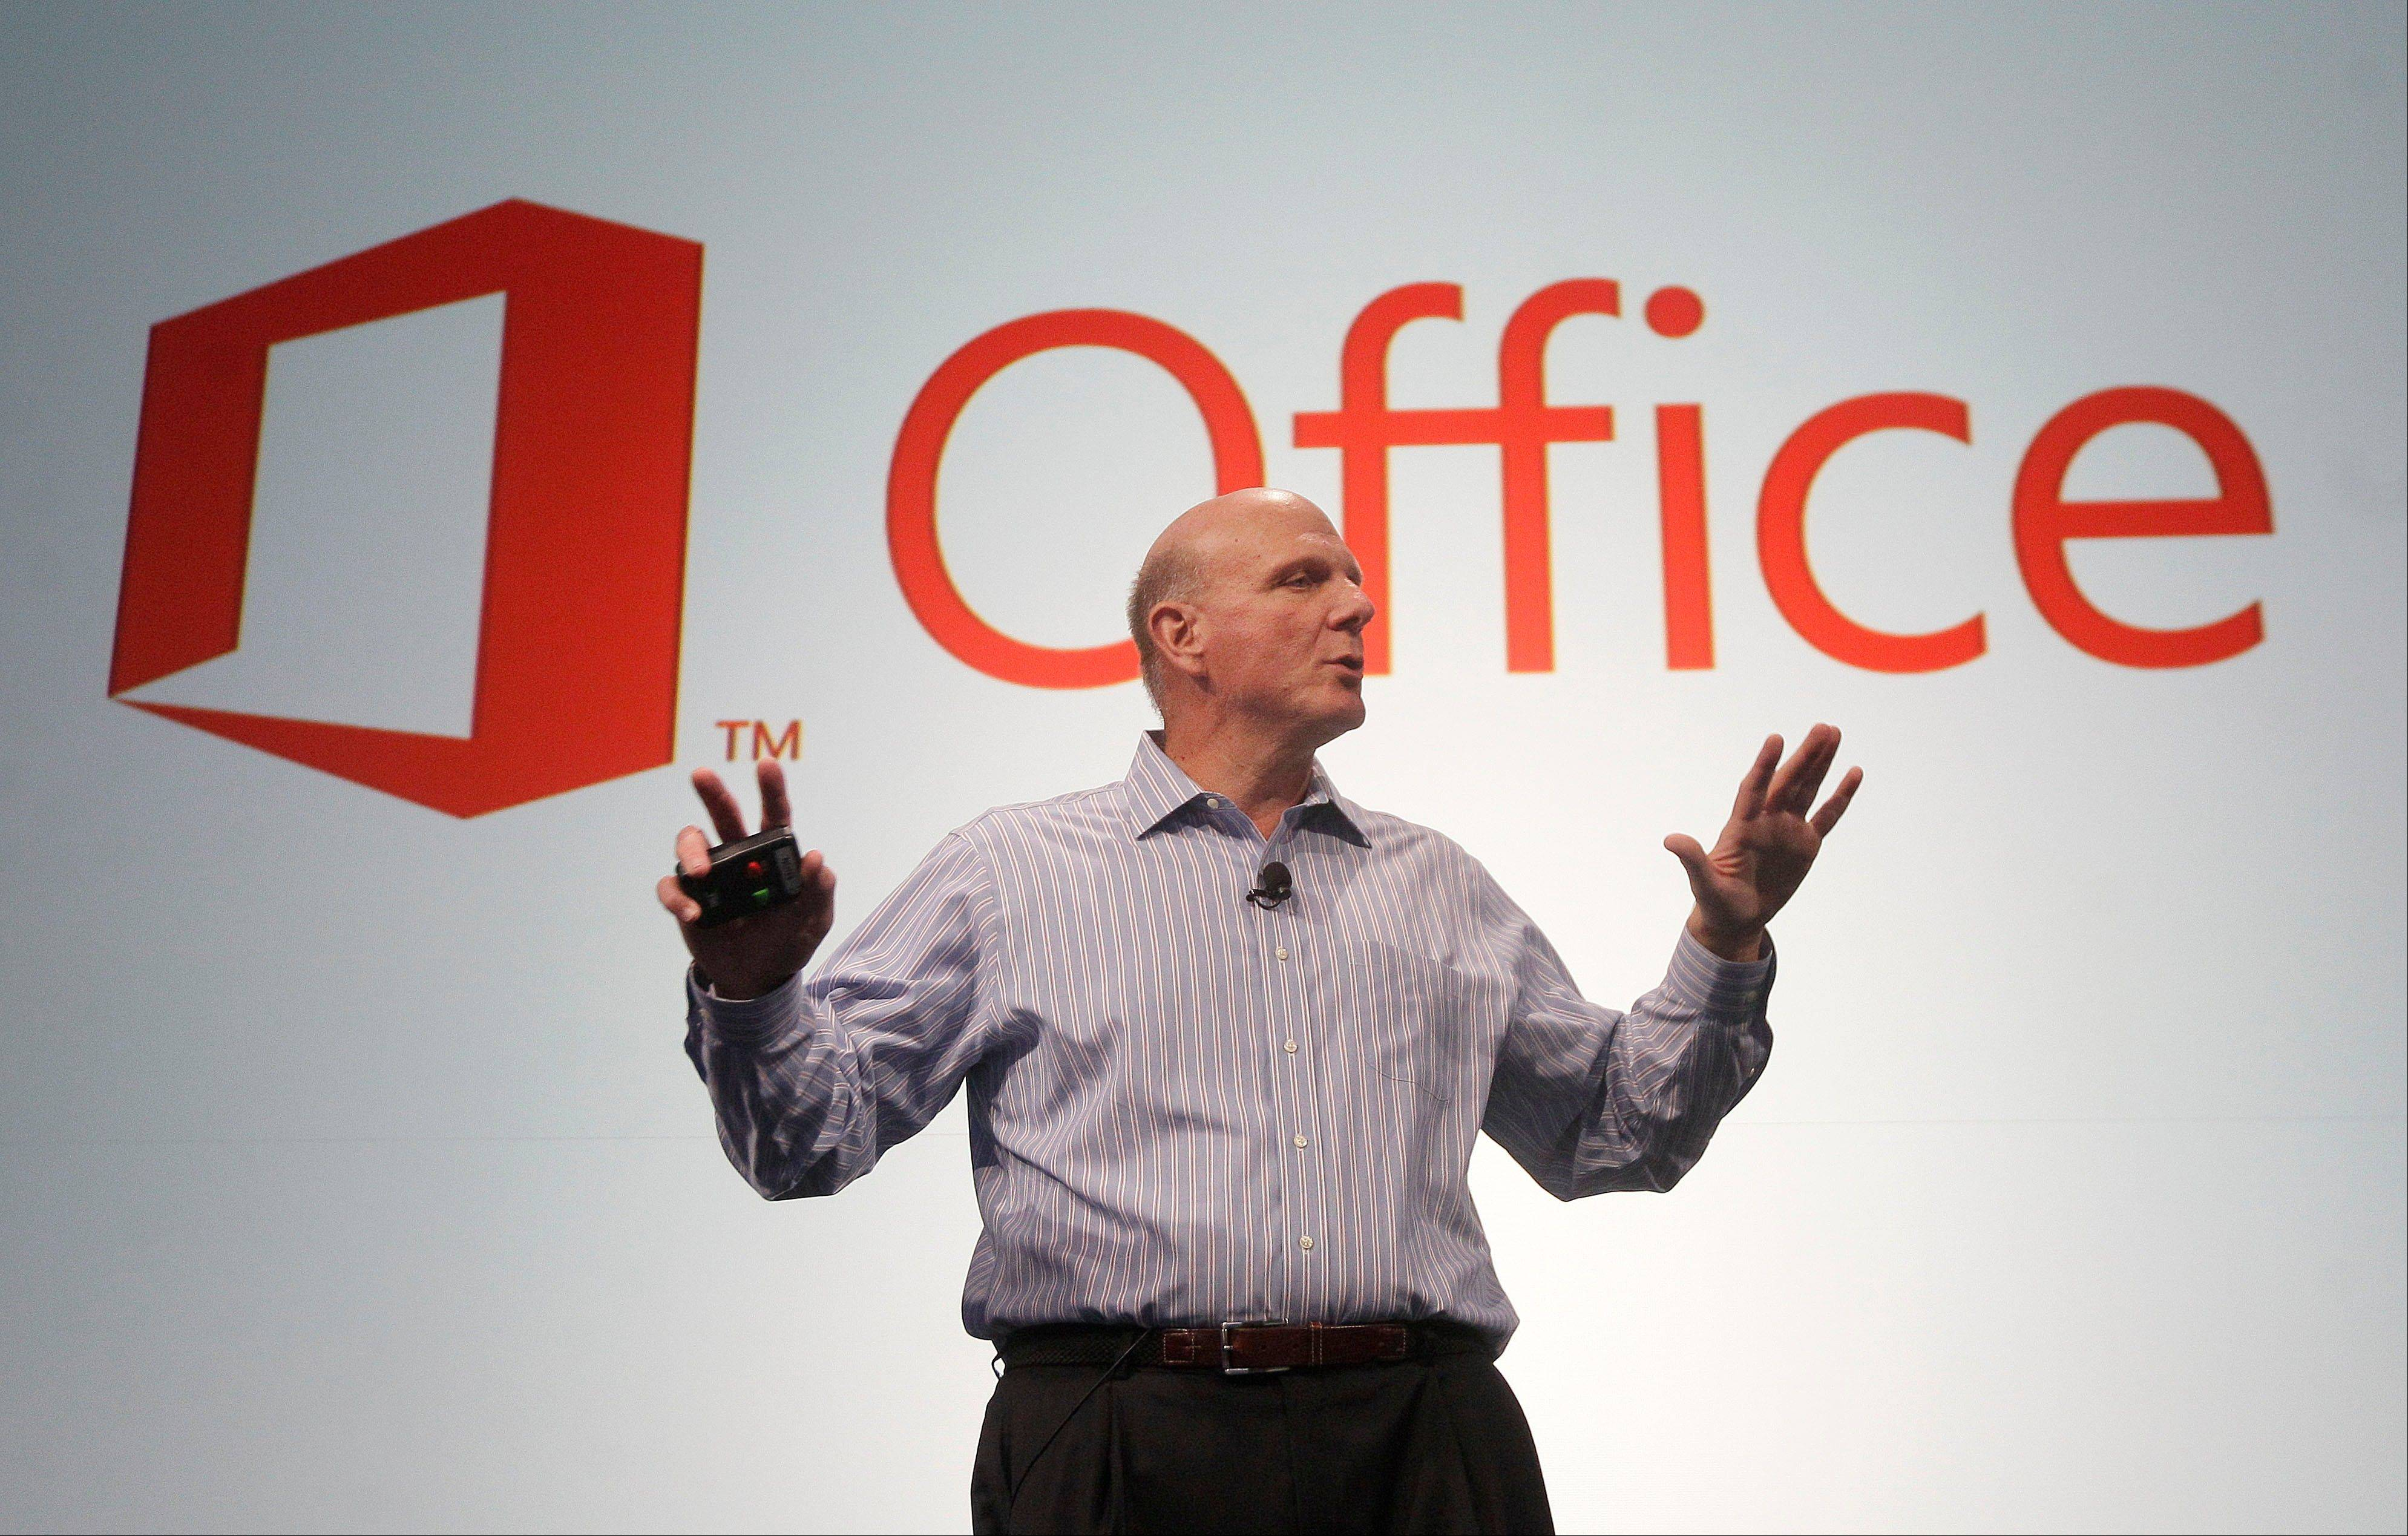 Microsoft CEO Steve Ballmer speaks at a Microsoft event in San Francisco Monday, when Microsoft unveiled a new version of its widely used, lucrative suite of word processing, spreadsheet and email programs.